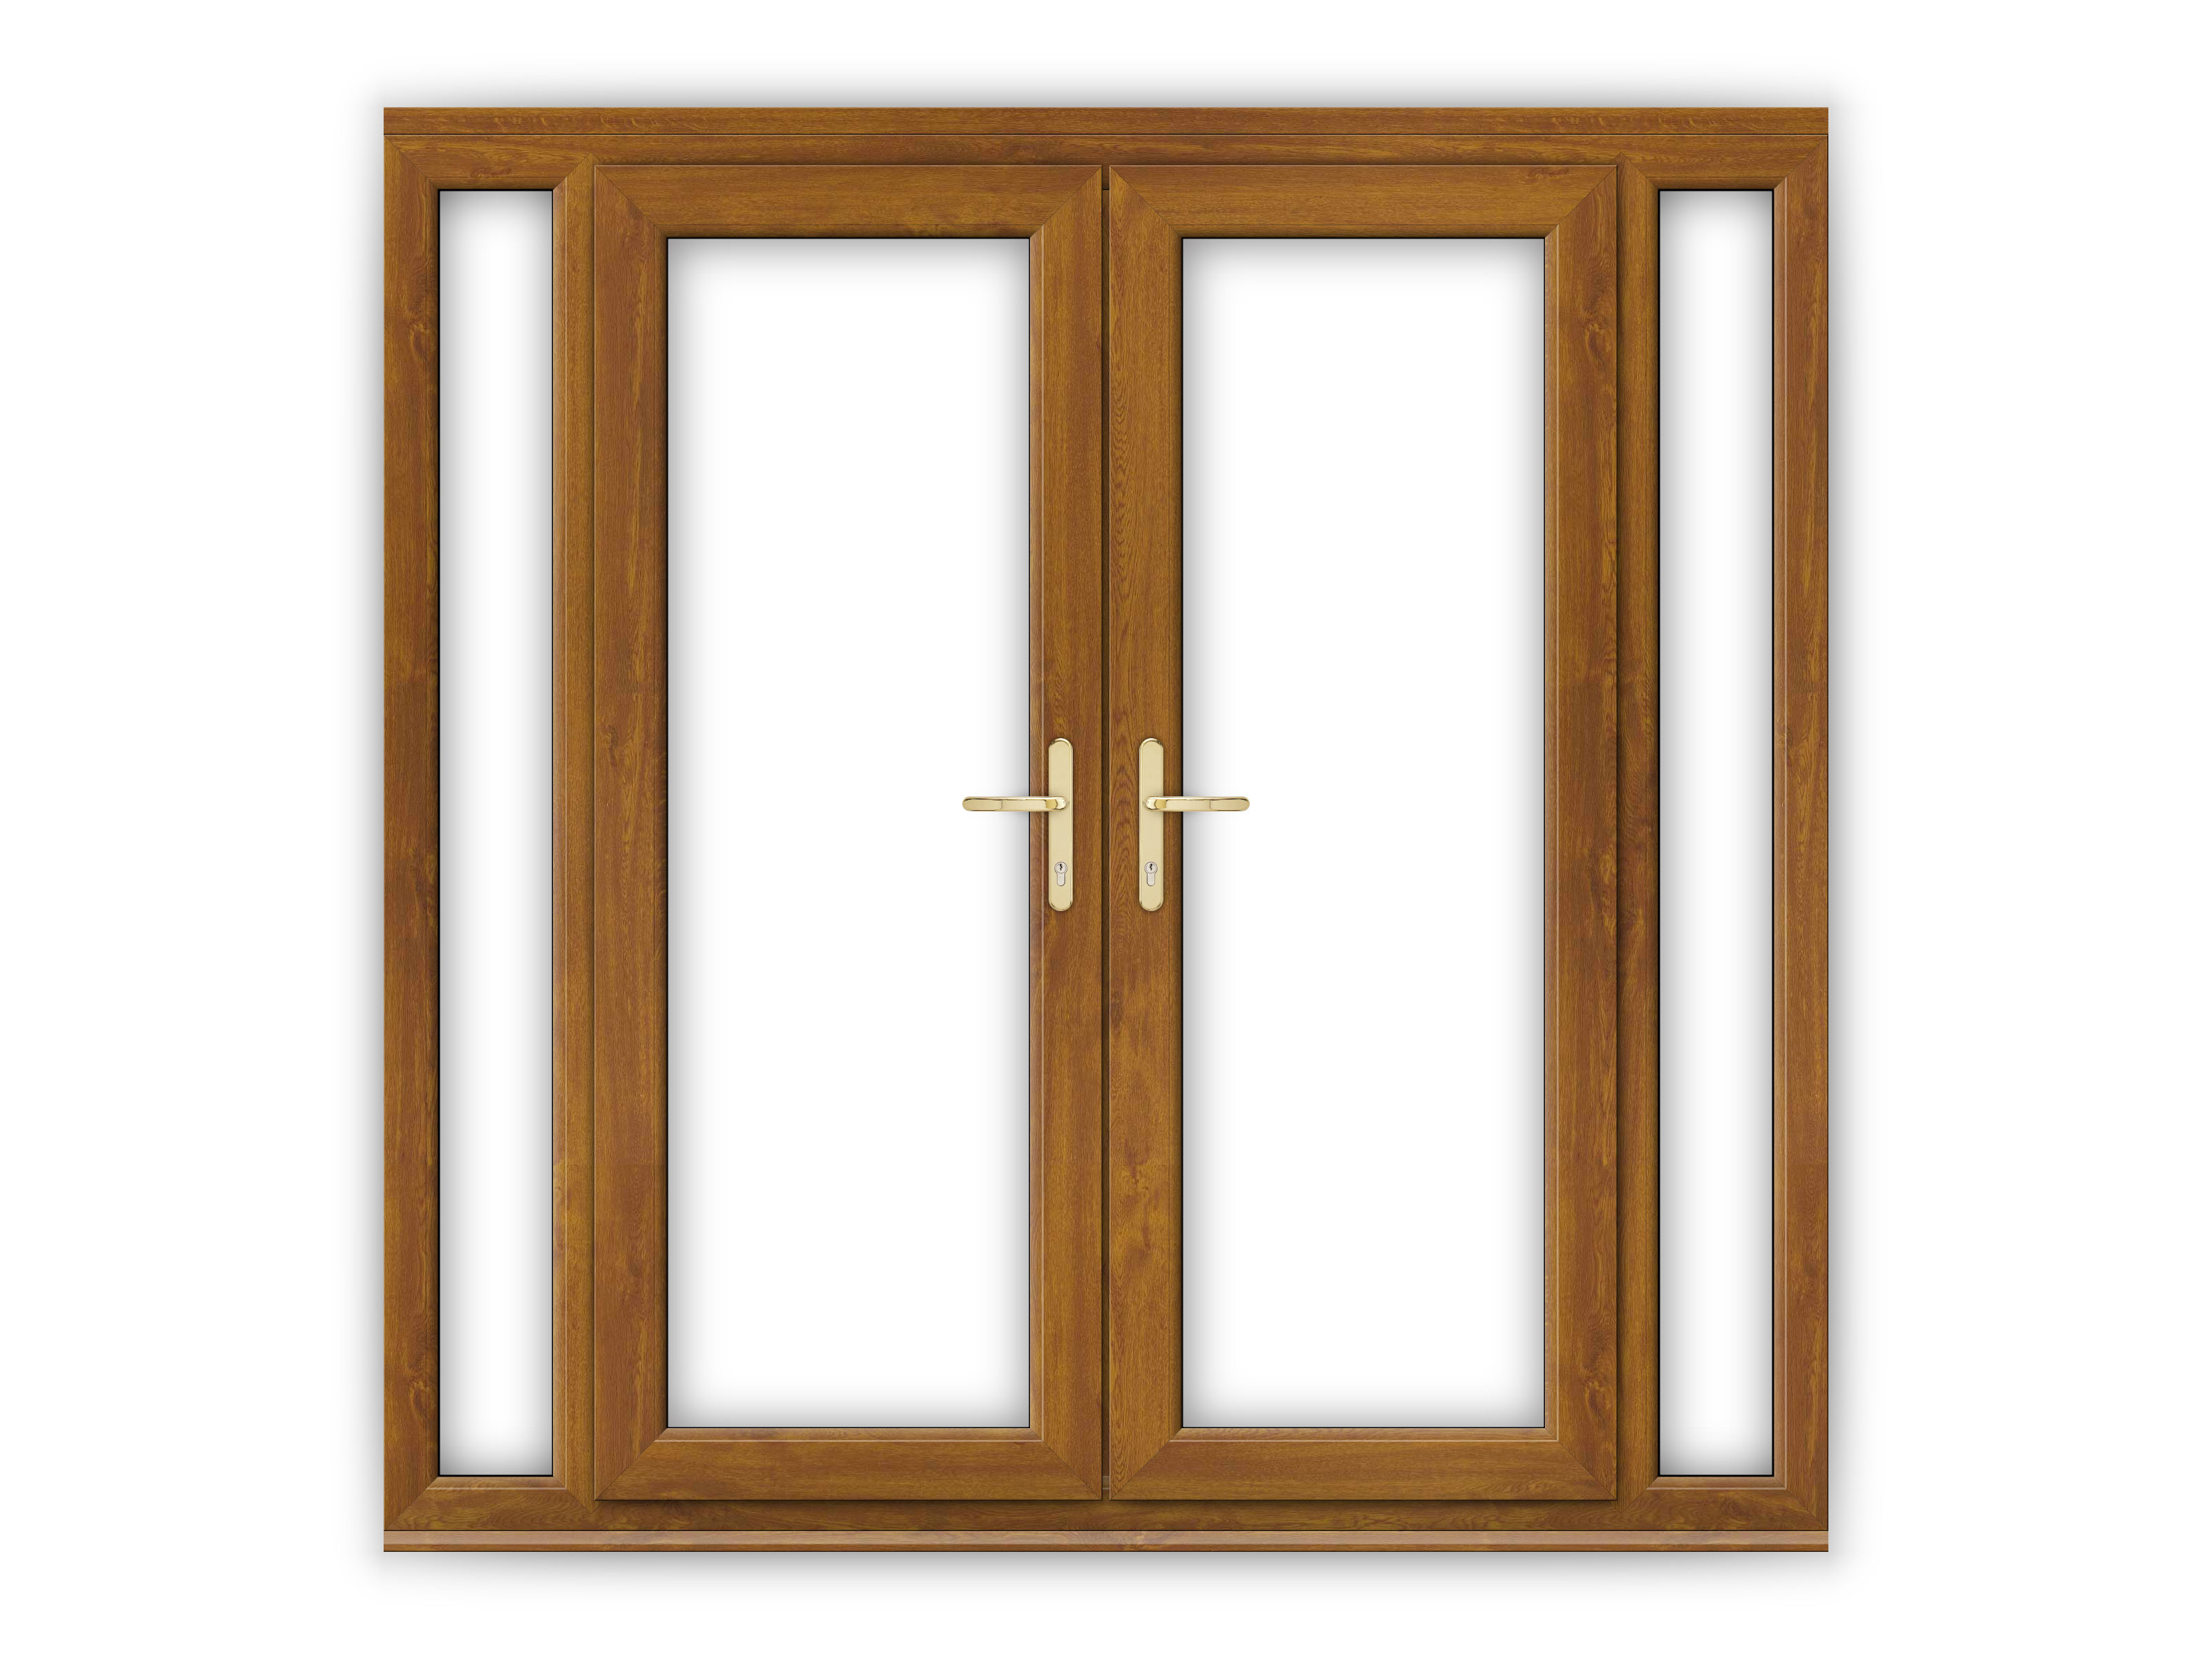 5ft golden oak upvc french doors with narrow side panels for 5 ft french patio doors